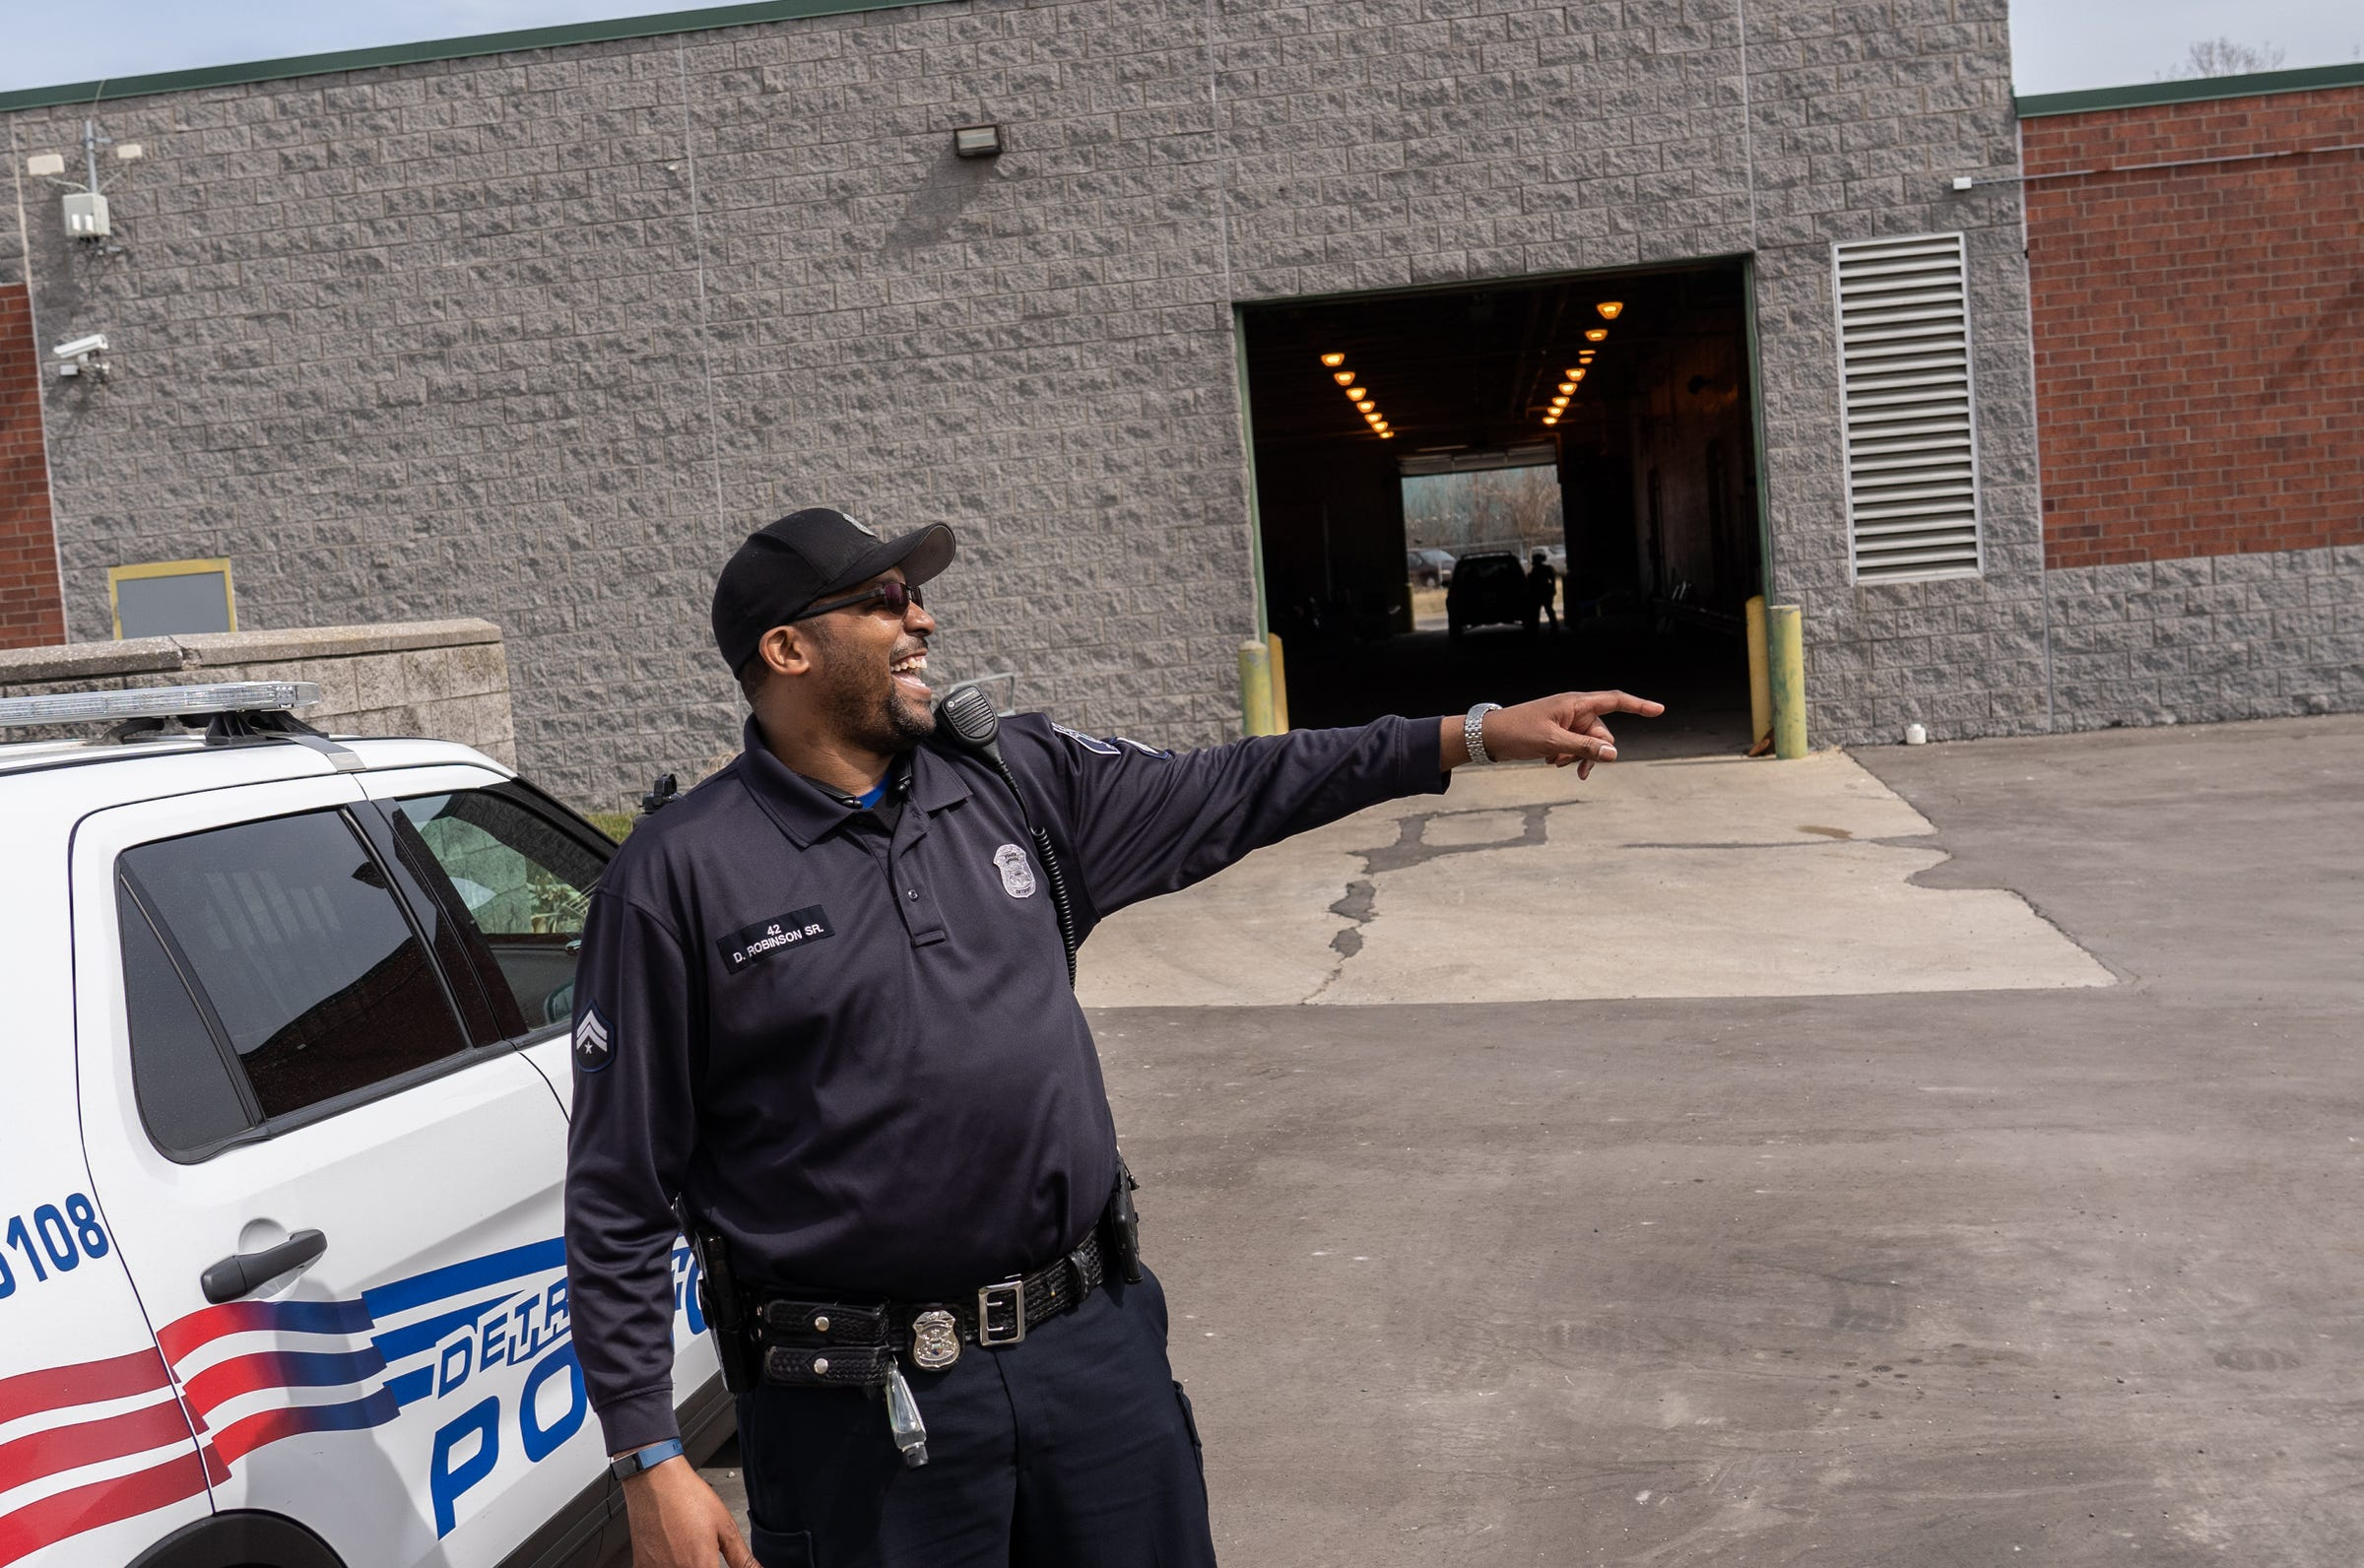 Detroit Police Department Neighborhood Police Officer Dan Robinson laughs with another officer after handing out gun safety information and gun locks door-to-door along Fenelon Street on Detroit's east side on Thursday, March 25, 2021.